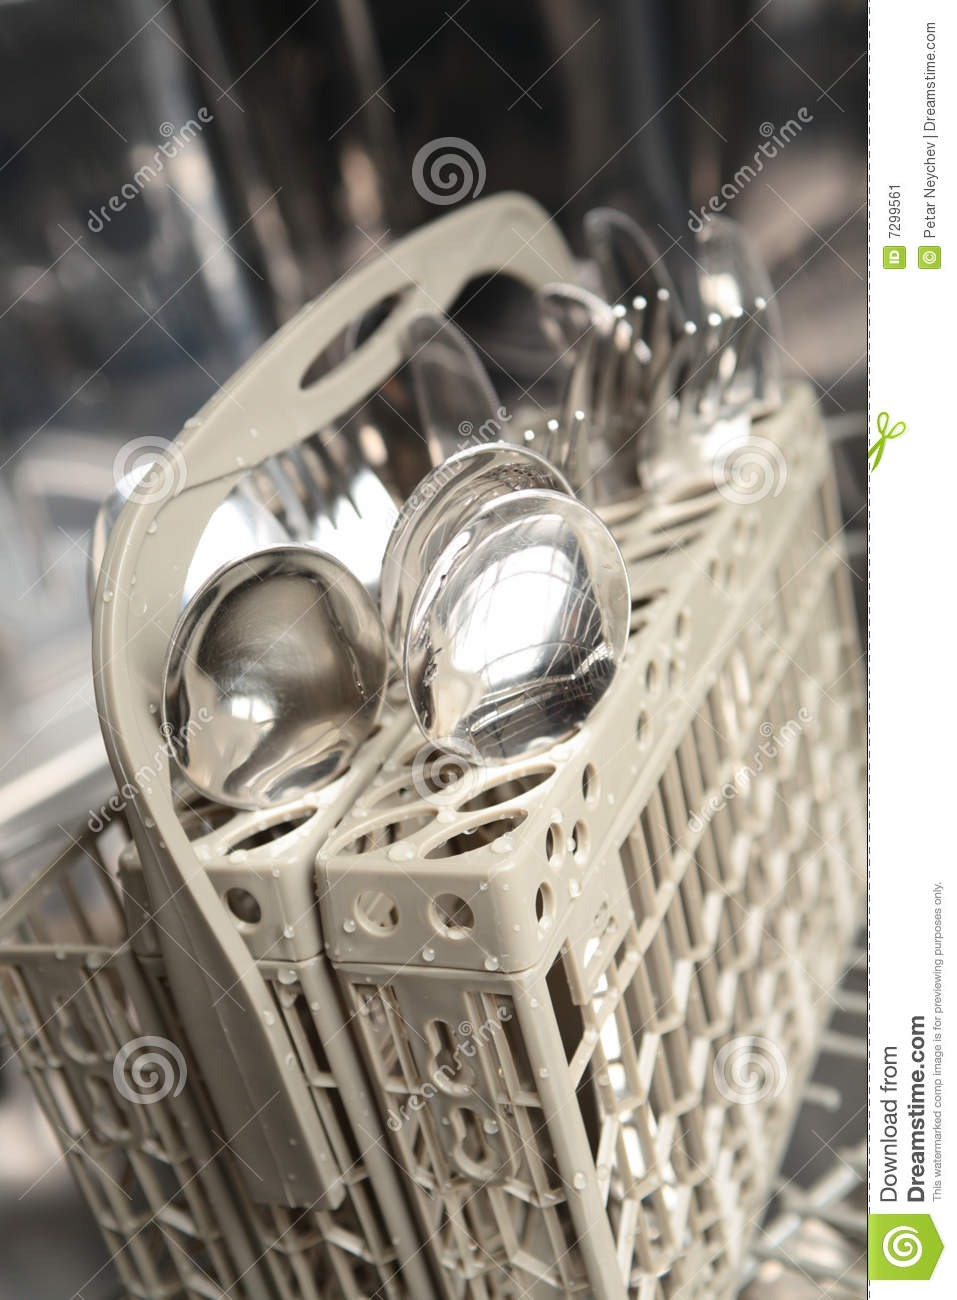 Before running dishwasher place the same utensils together in separate compartments (forks together, spoons together, Etc.)